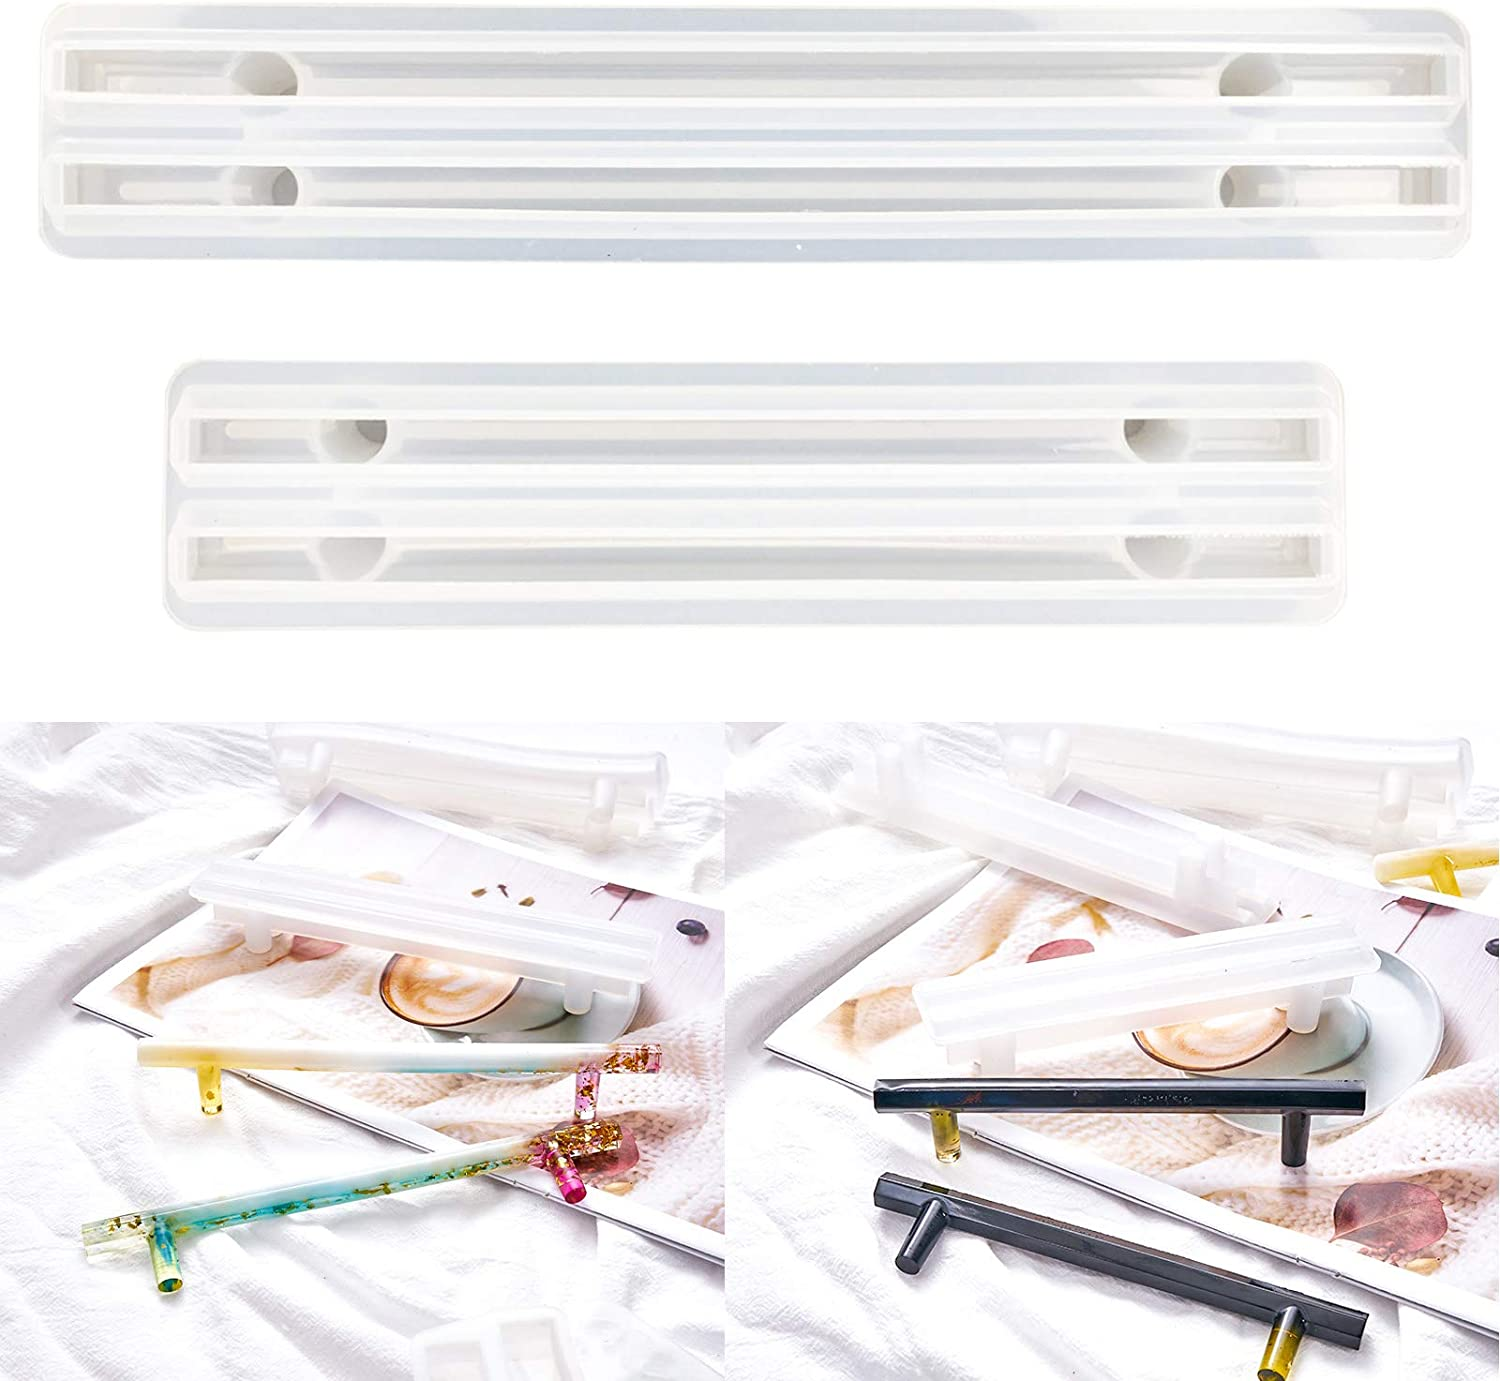 Max 61% OFF 2 Set 4pcs Epoxy 5 ☆ very popular Tray Handle Mold Casting Resin for Makin